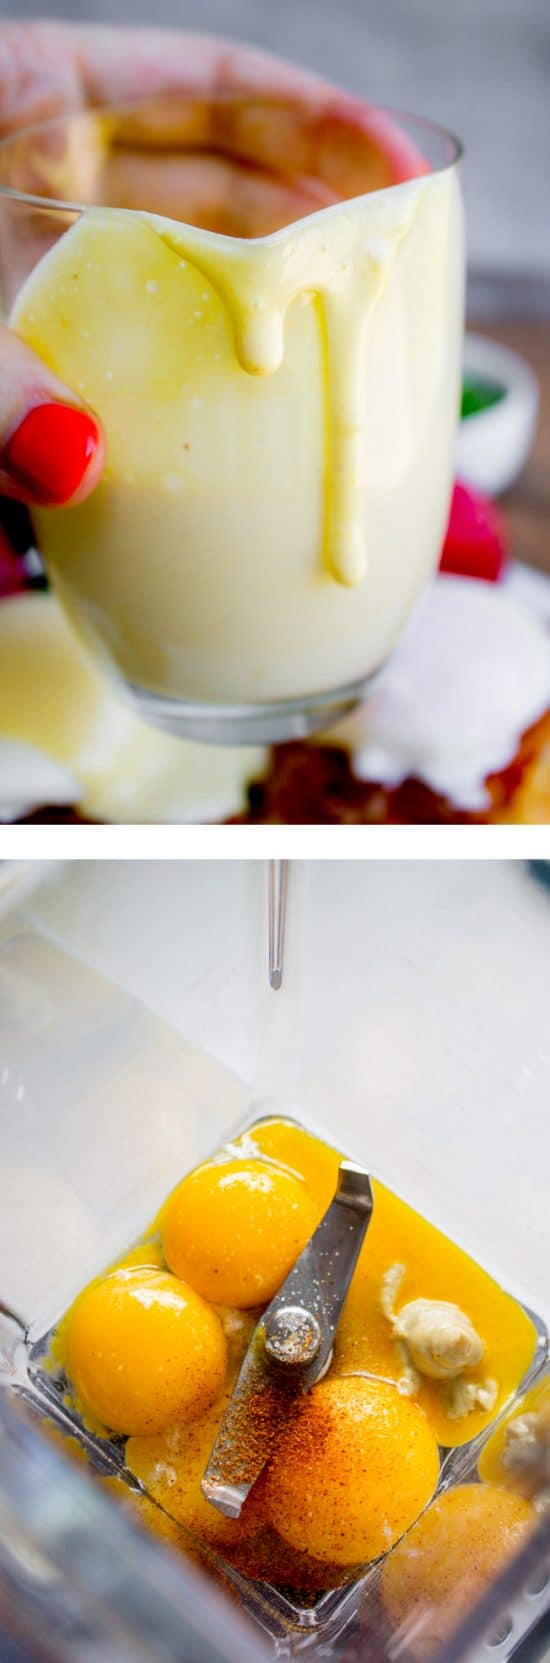 Blender Hollandaise Sauce (5 Minute Recipe) from The Food Charlatan